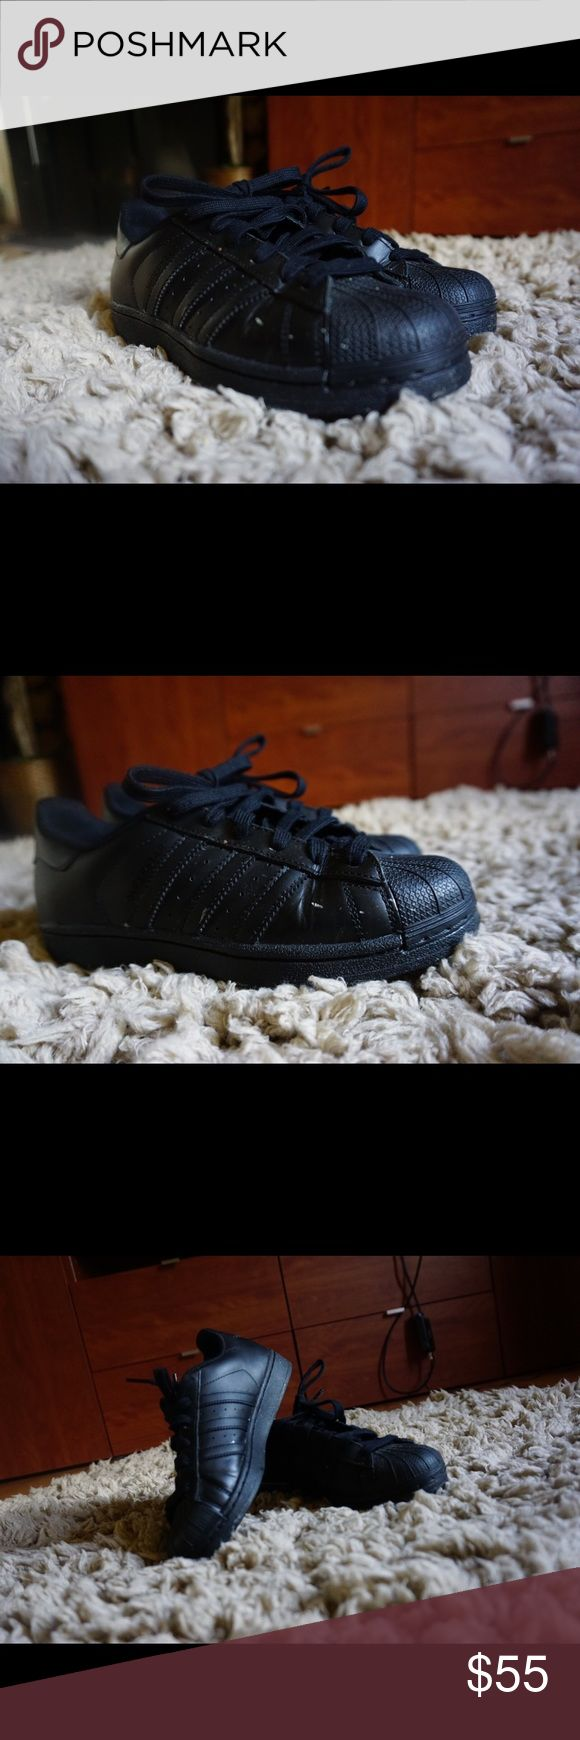 Black superstar Adidas I'm selling two of these. One is a men's US size 4. The other is a men's US size 3.5. The size 4 is a women's 6.5 true fit. And the other is a women's size 6 true fit. I know this because I'm usually a size 6 and the 3.5 one fits snugly with socks on. adidas Shoes Sneakers